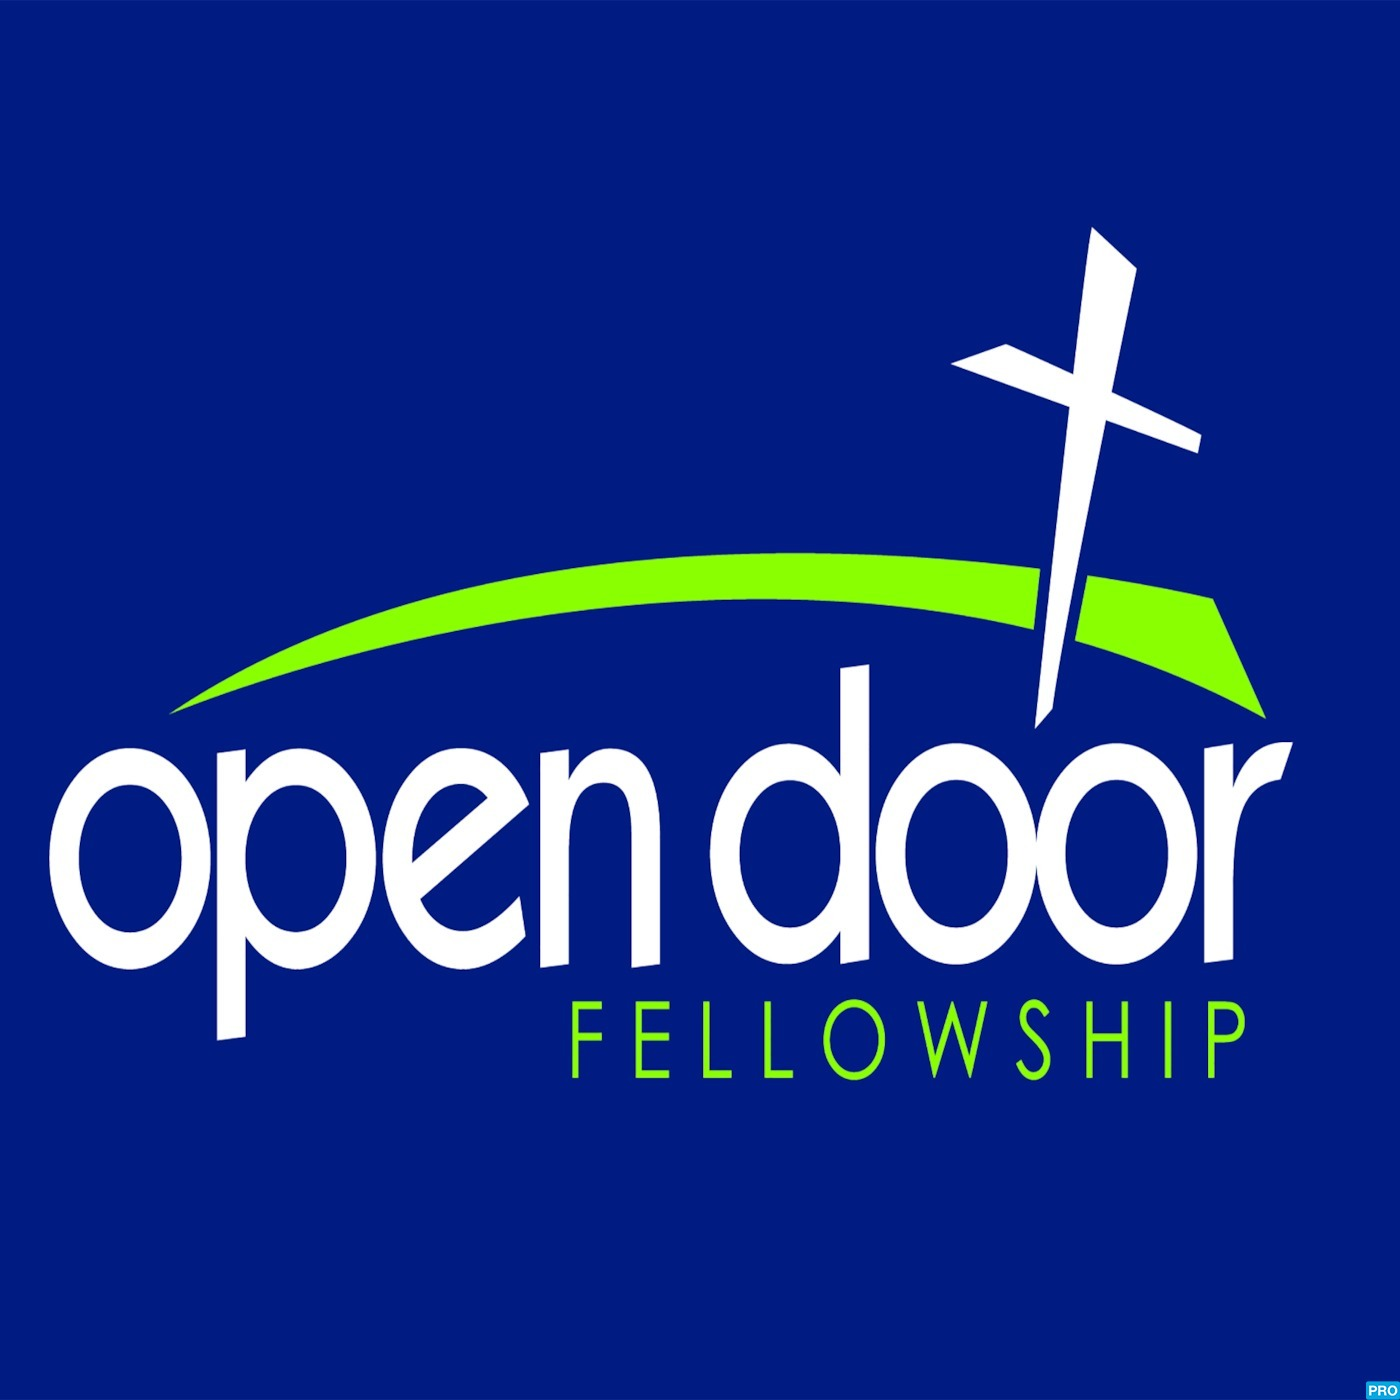 Open Door Fellowship